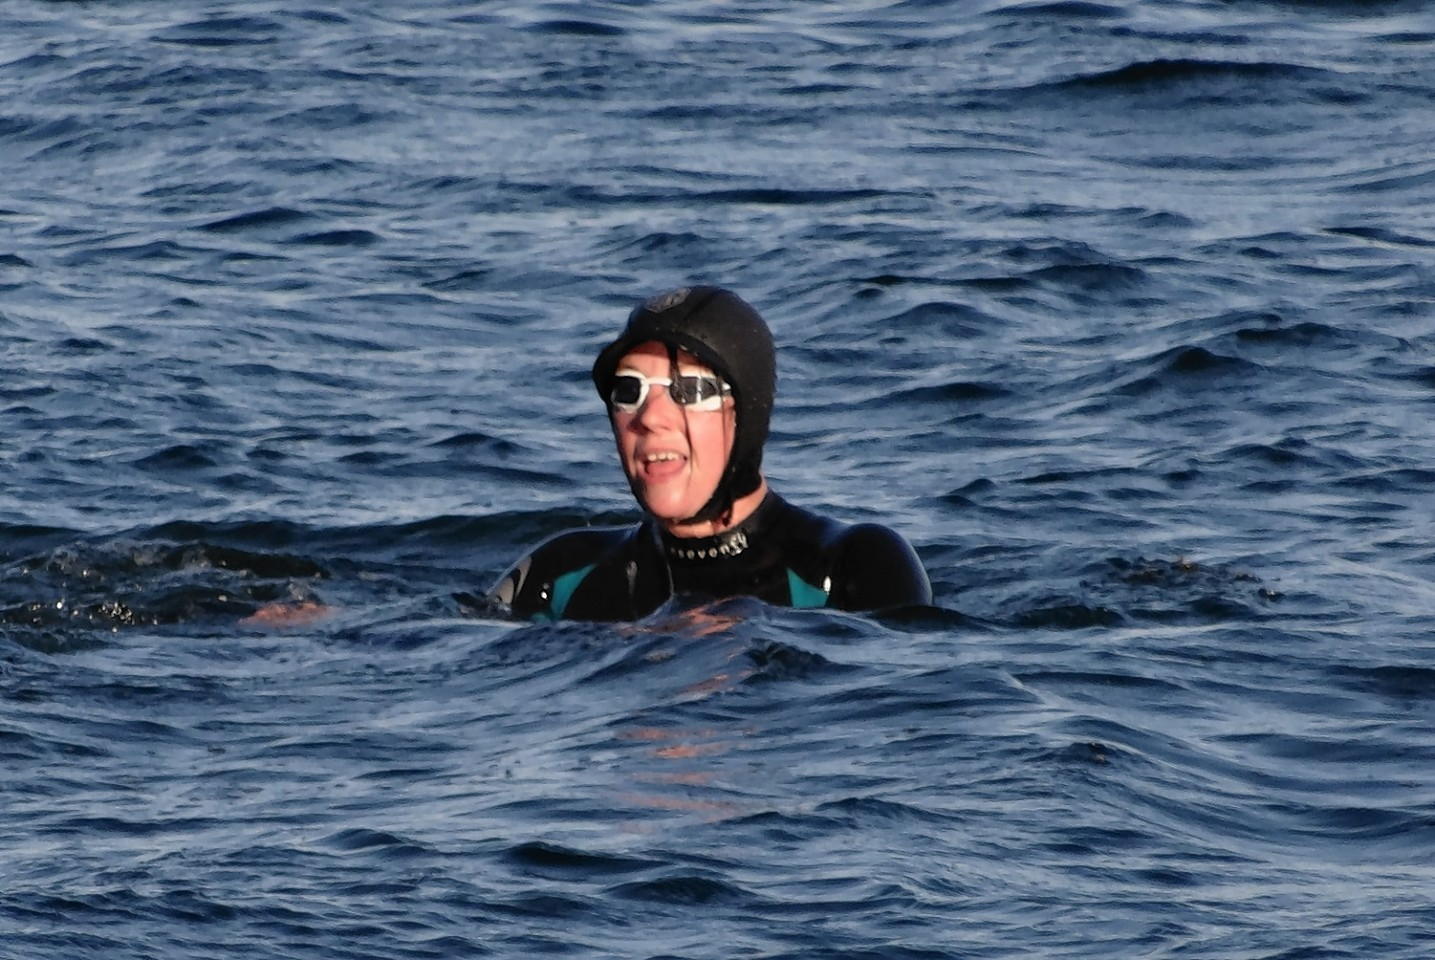 The St Kilda swim has had to be postponed for a third time this year